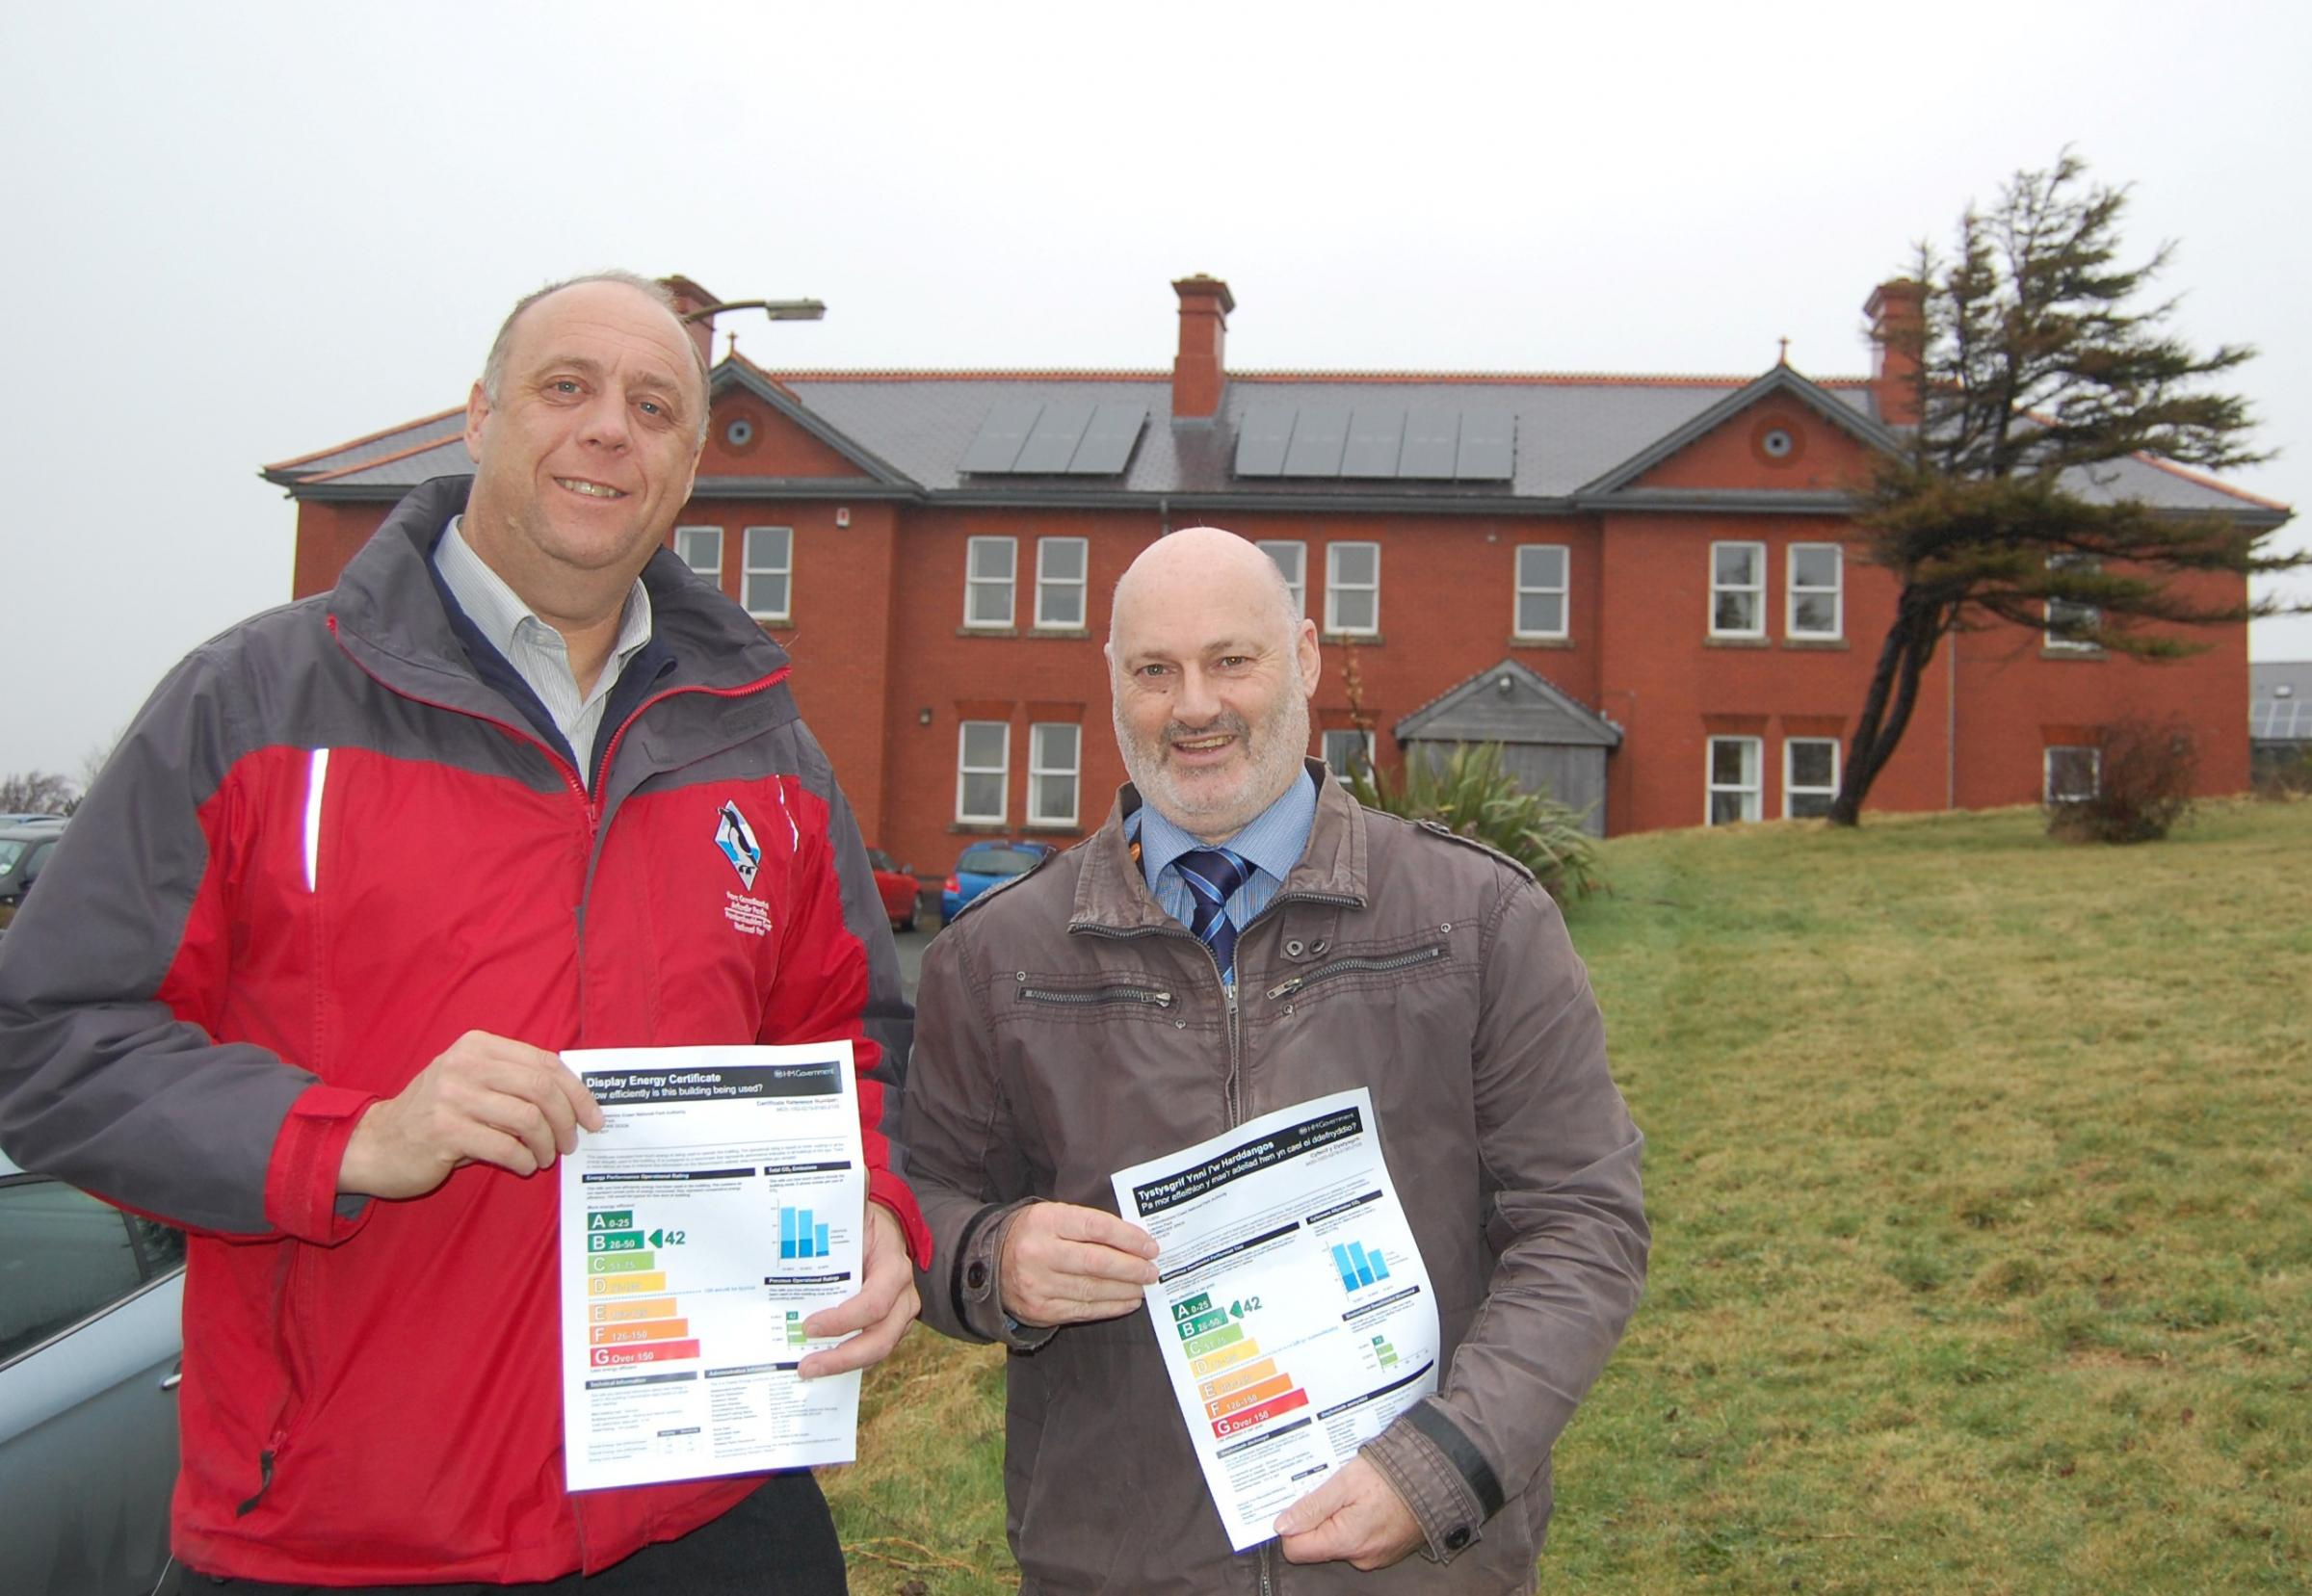 ENERGY EFFICIENT: National Park Authority Building Projects Officer Andrew Muskett and Chairman Cllr Mike James with the Display Energy Certificate outside the Pembroke Dock headquarters. (4311390)